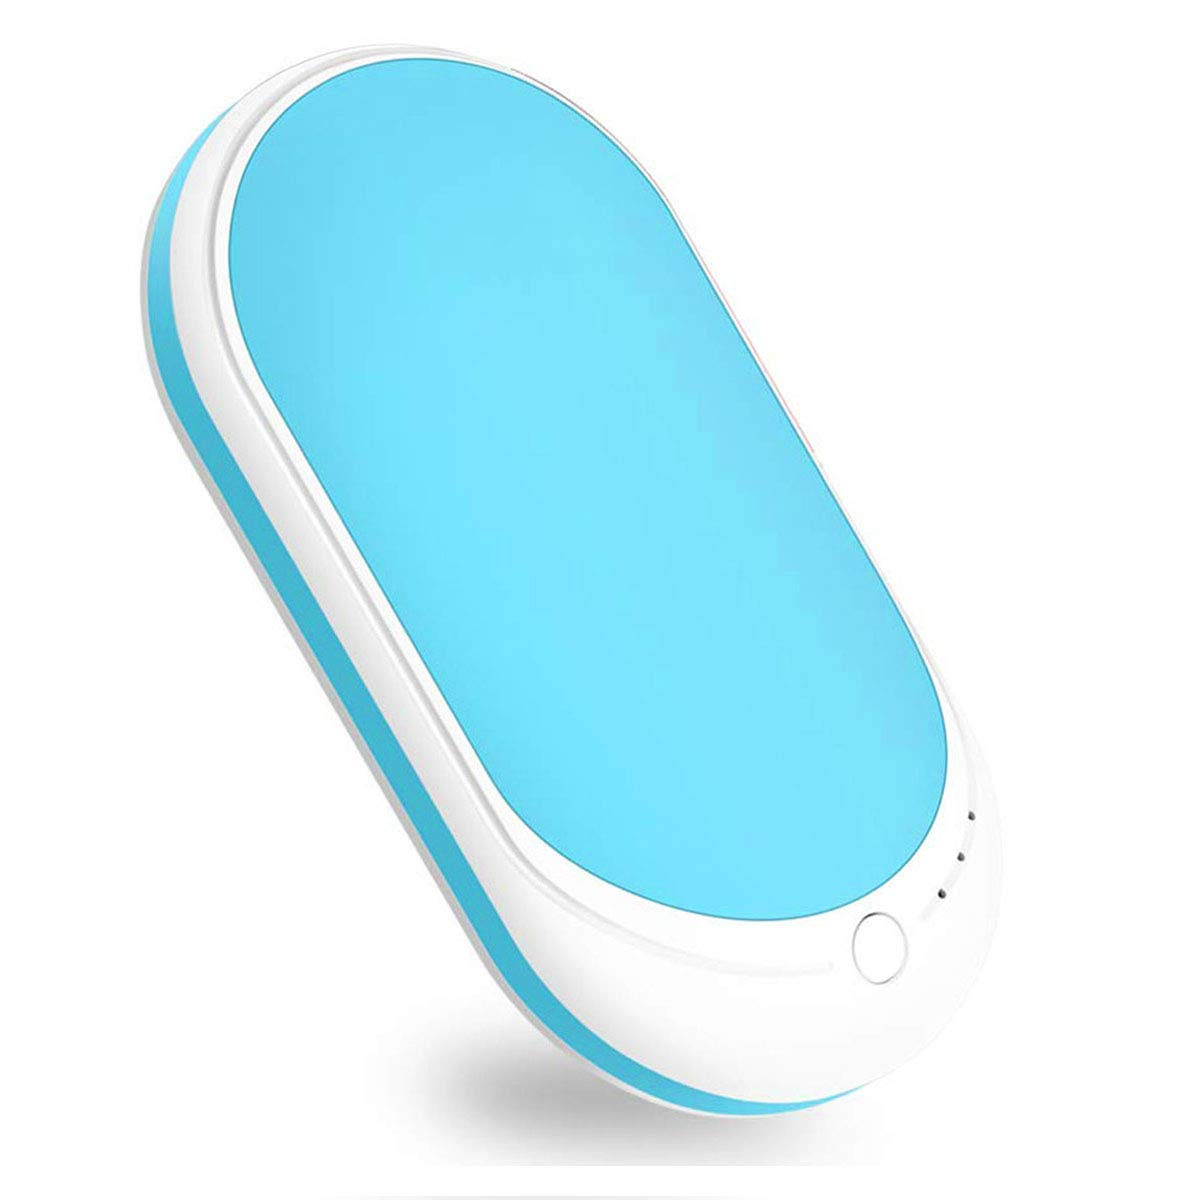 ThreeLeaf Rechargeable Hand Warmer 5200mAh Electronic Portable Instant Heating/USB Back-up Power Back Battery for Samsung.iPhone